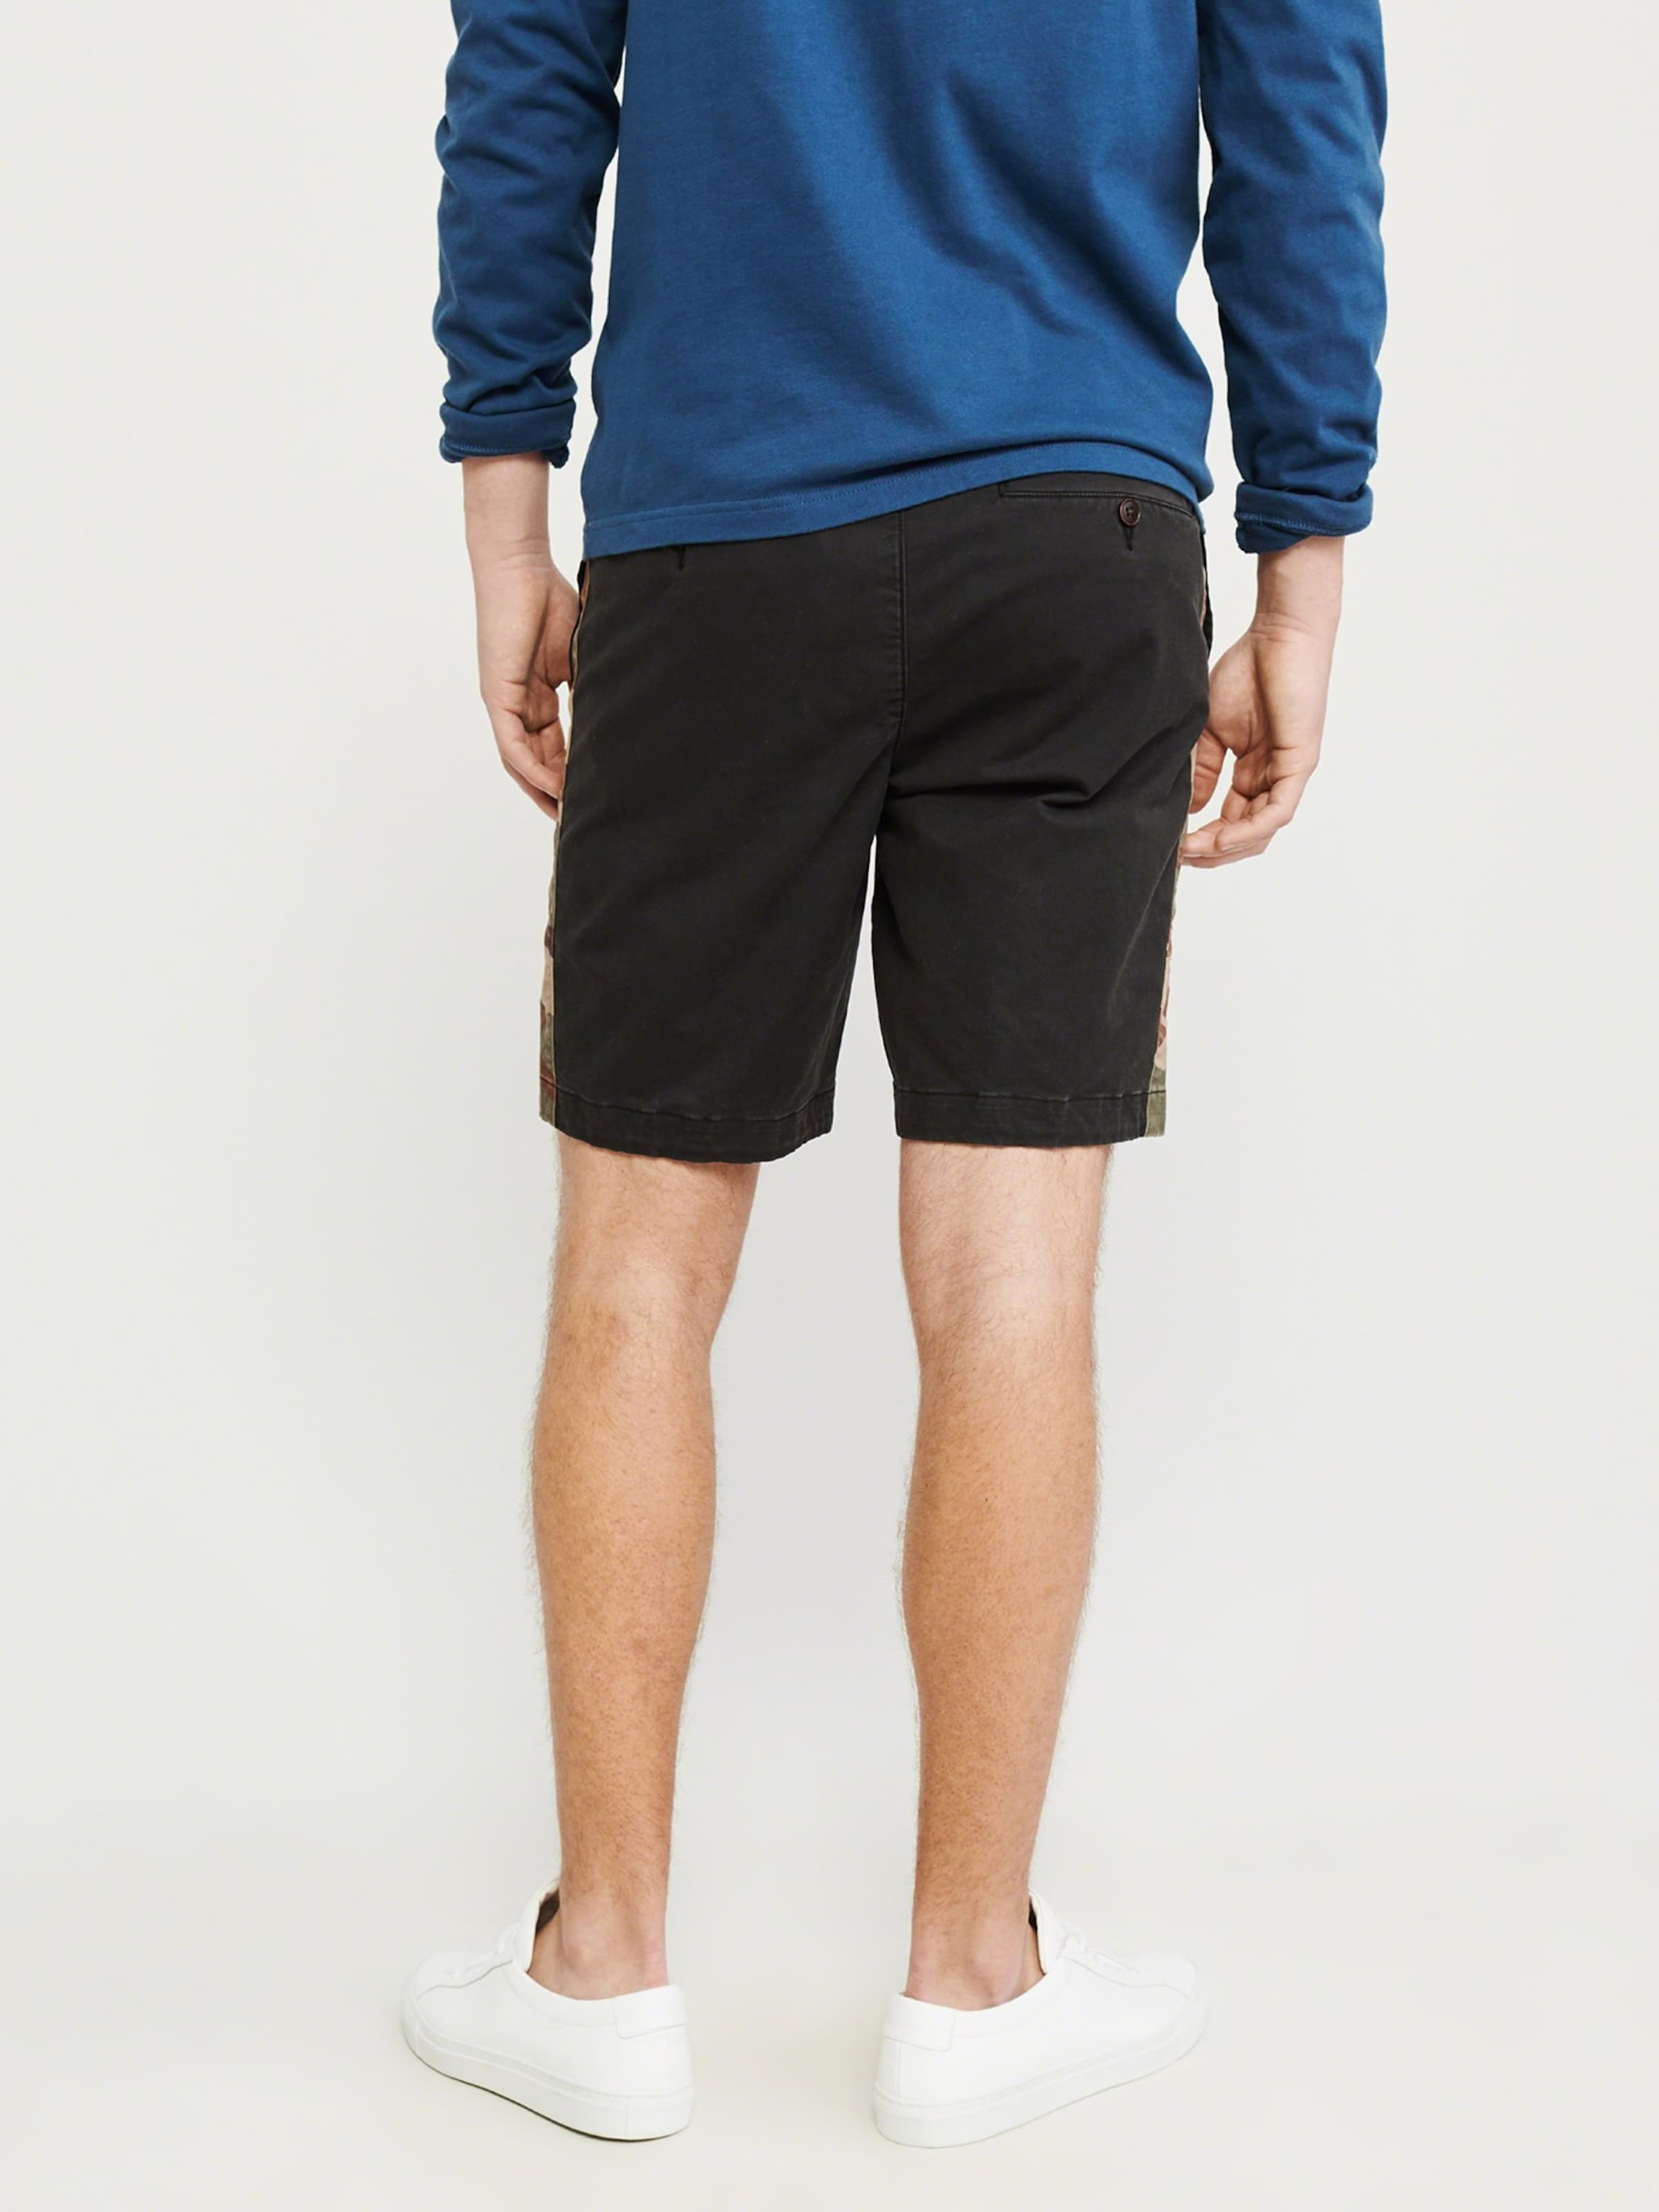 Hose Fitch 'cpf Abercrombieamp; In Grün 9in Charcoal' lJcTFK1